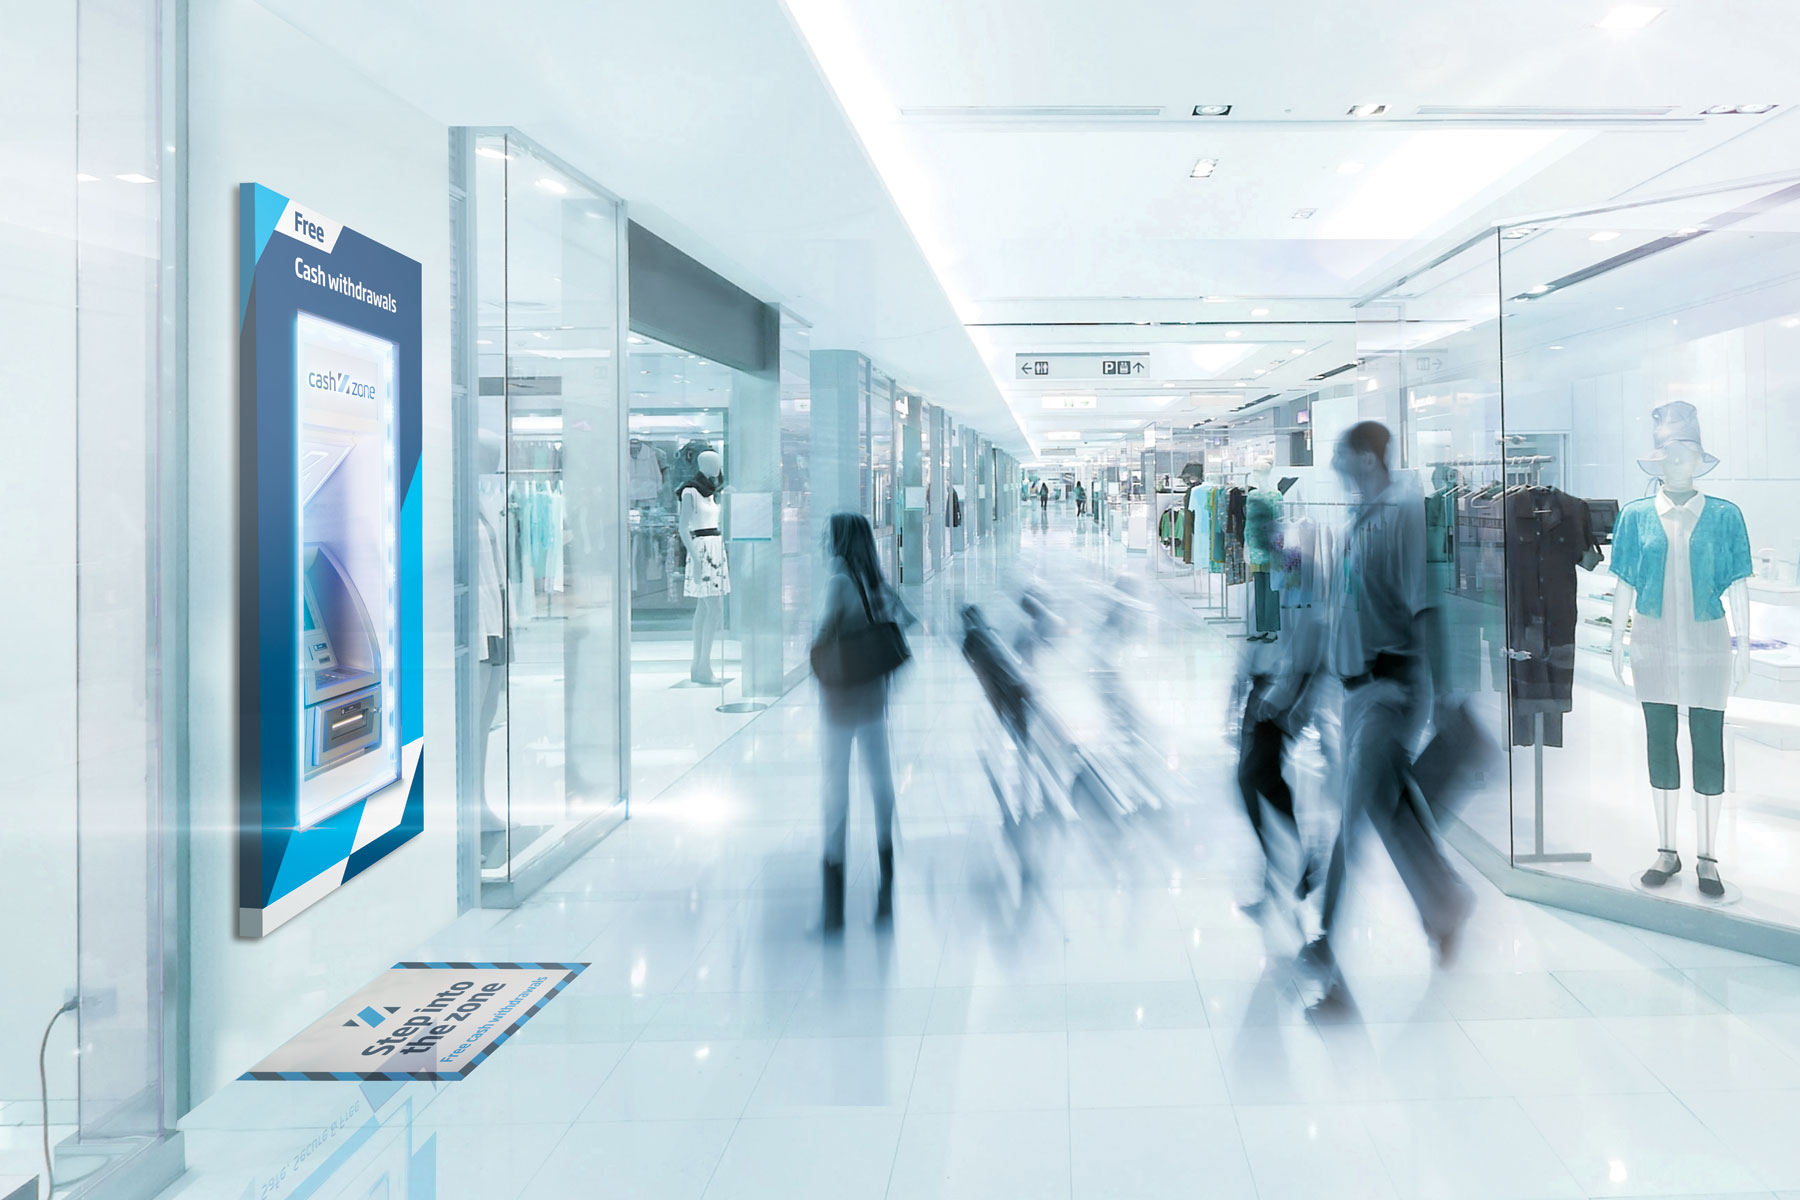 We worked with manufacturers to create brand assets designed to increase footfall. LED lighting and localised vinyls became the first development.